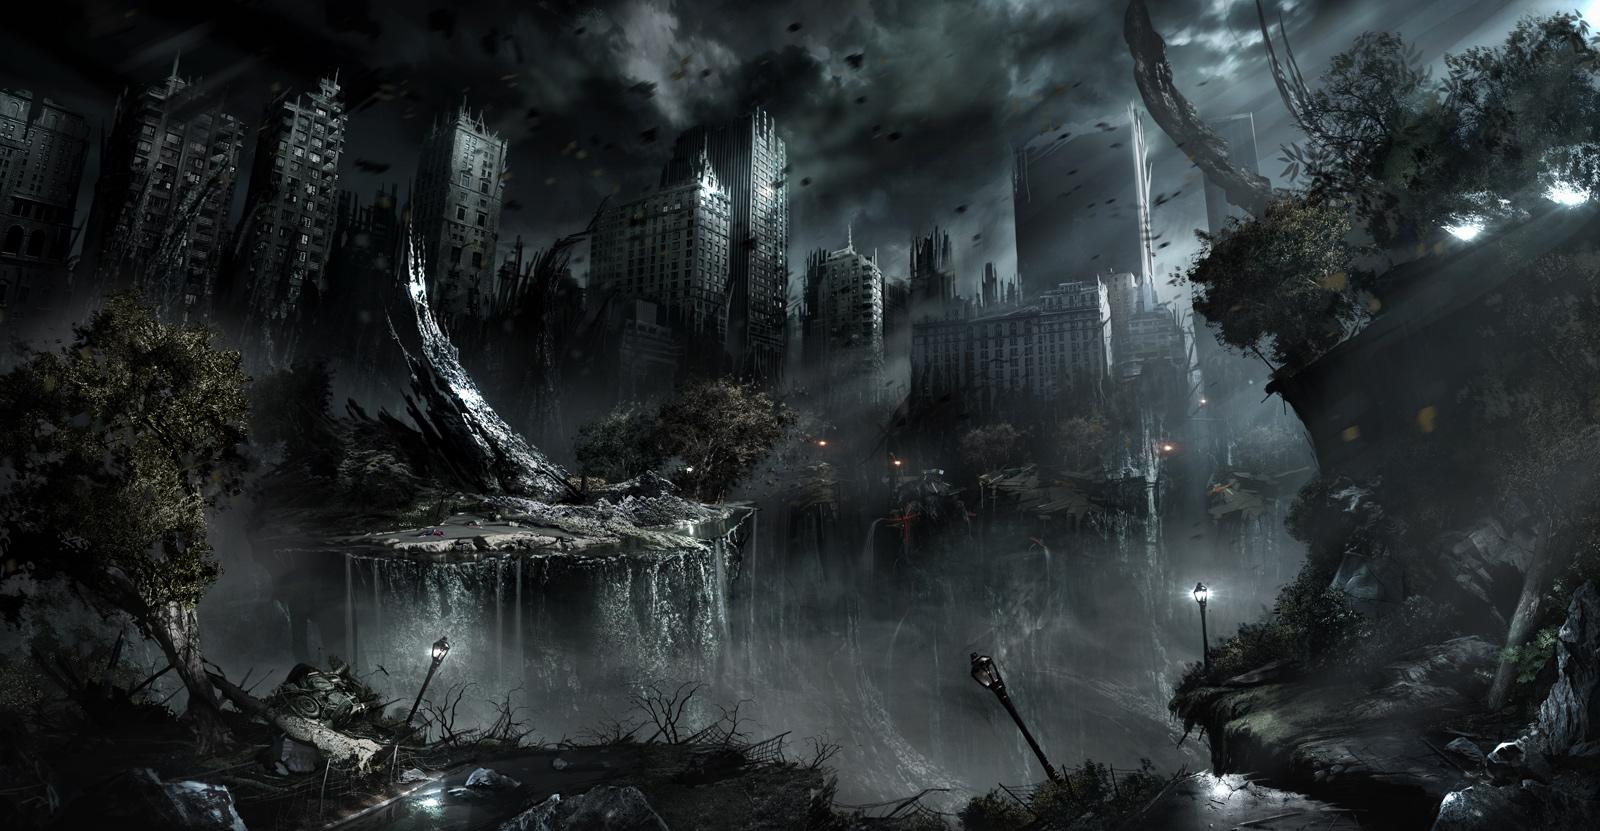 apocalyptic city wallpaper - photo #12